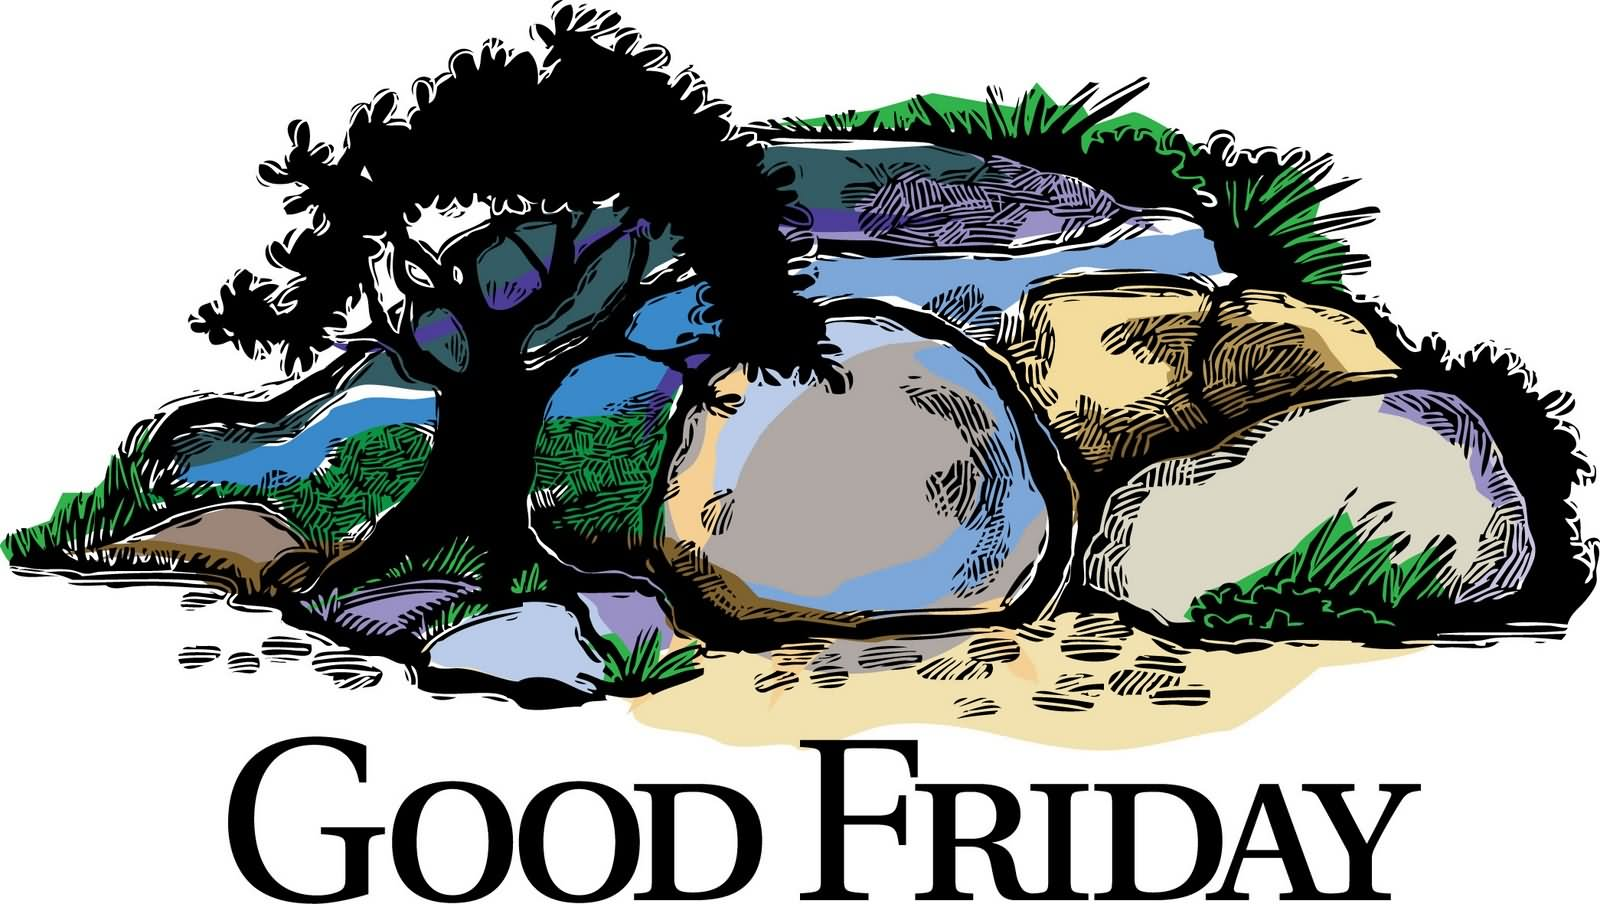 20 very beautiful good friday clipart pictures rh askideas com friday clipart graphics images friday clip arts for work